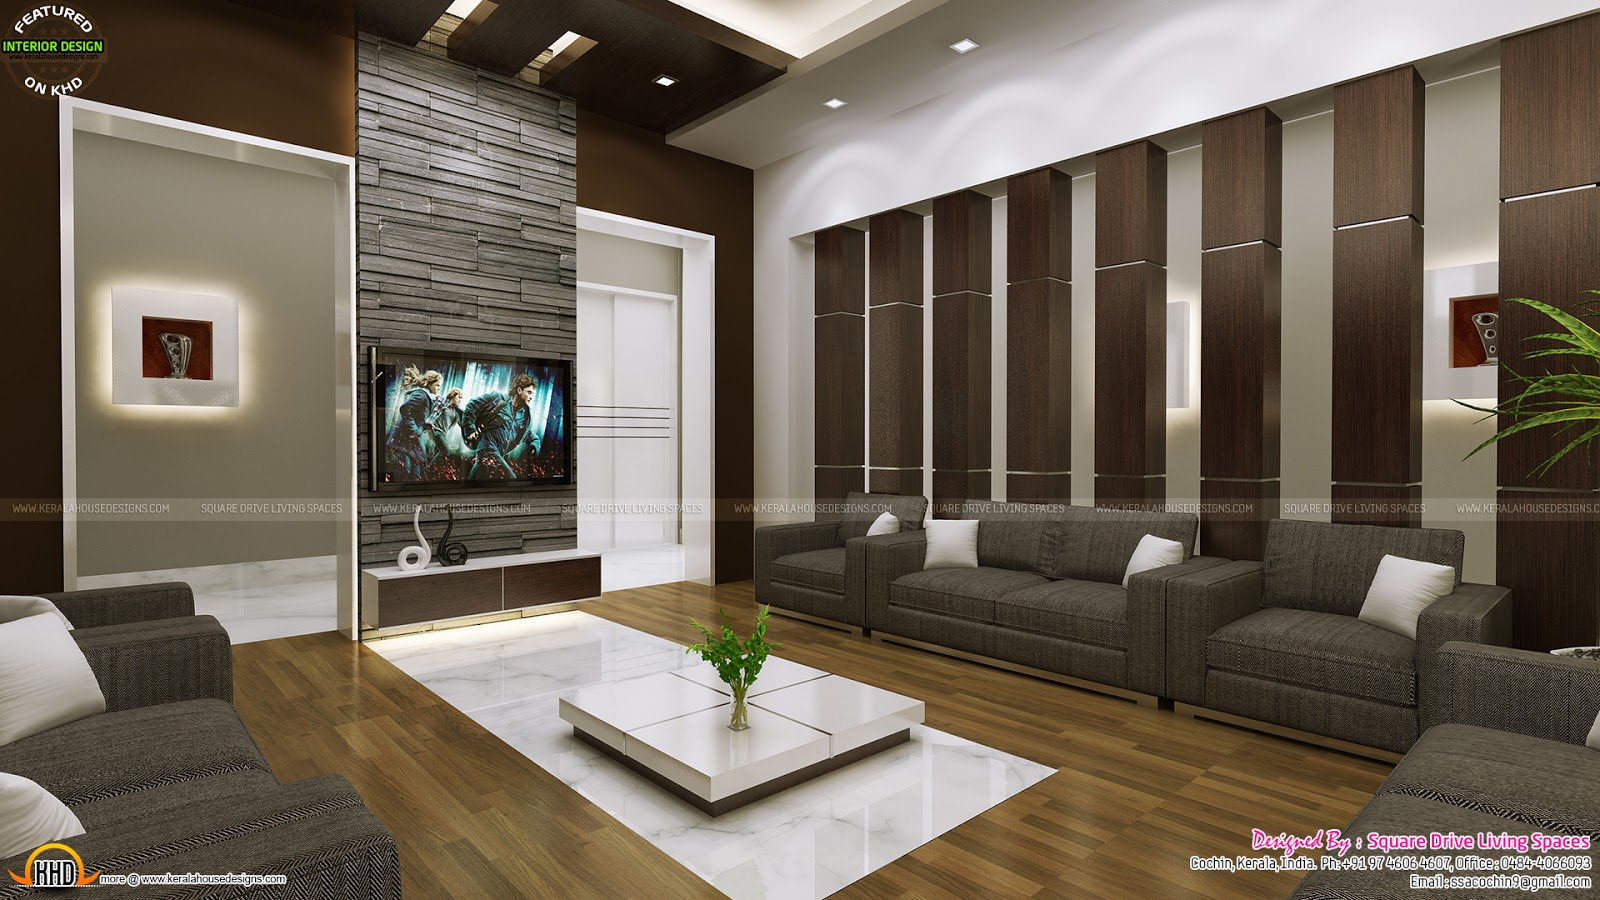 Attractive home interior ideas kerala home design and for Inside home design pictures